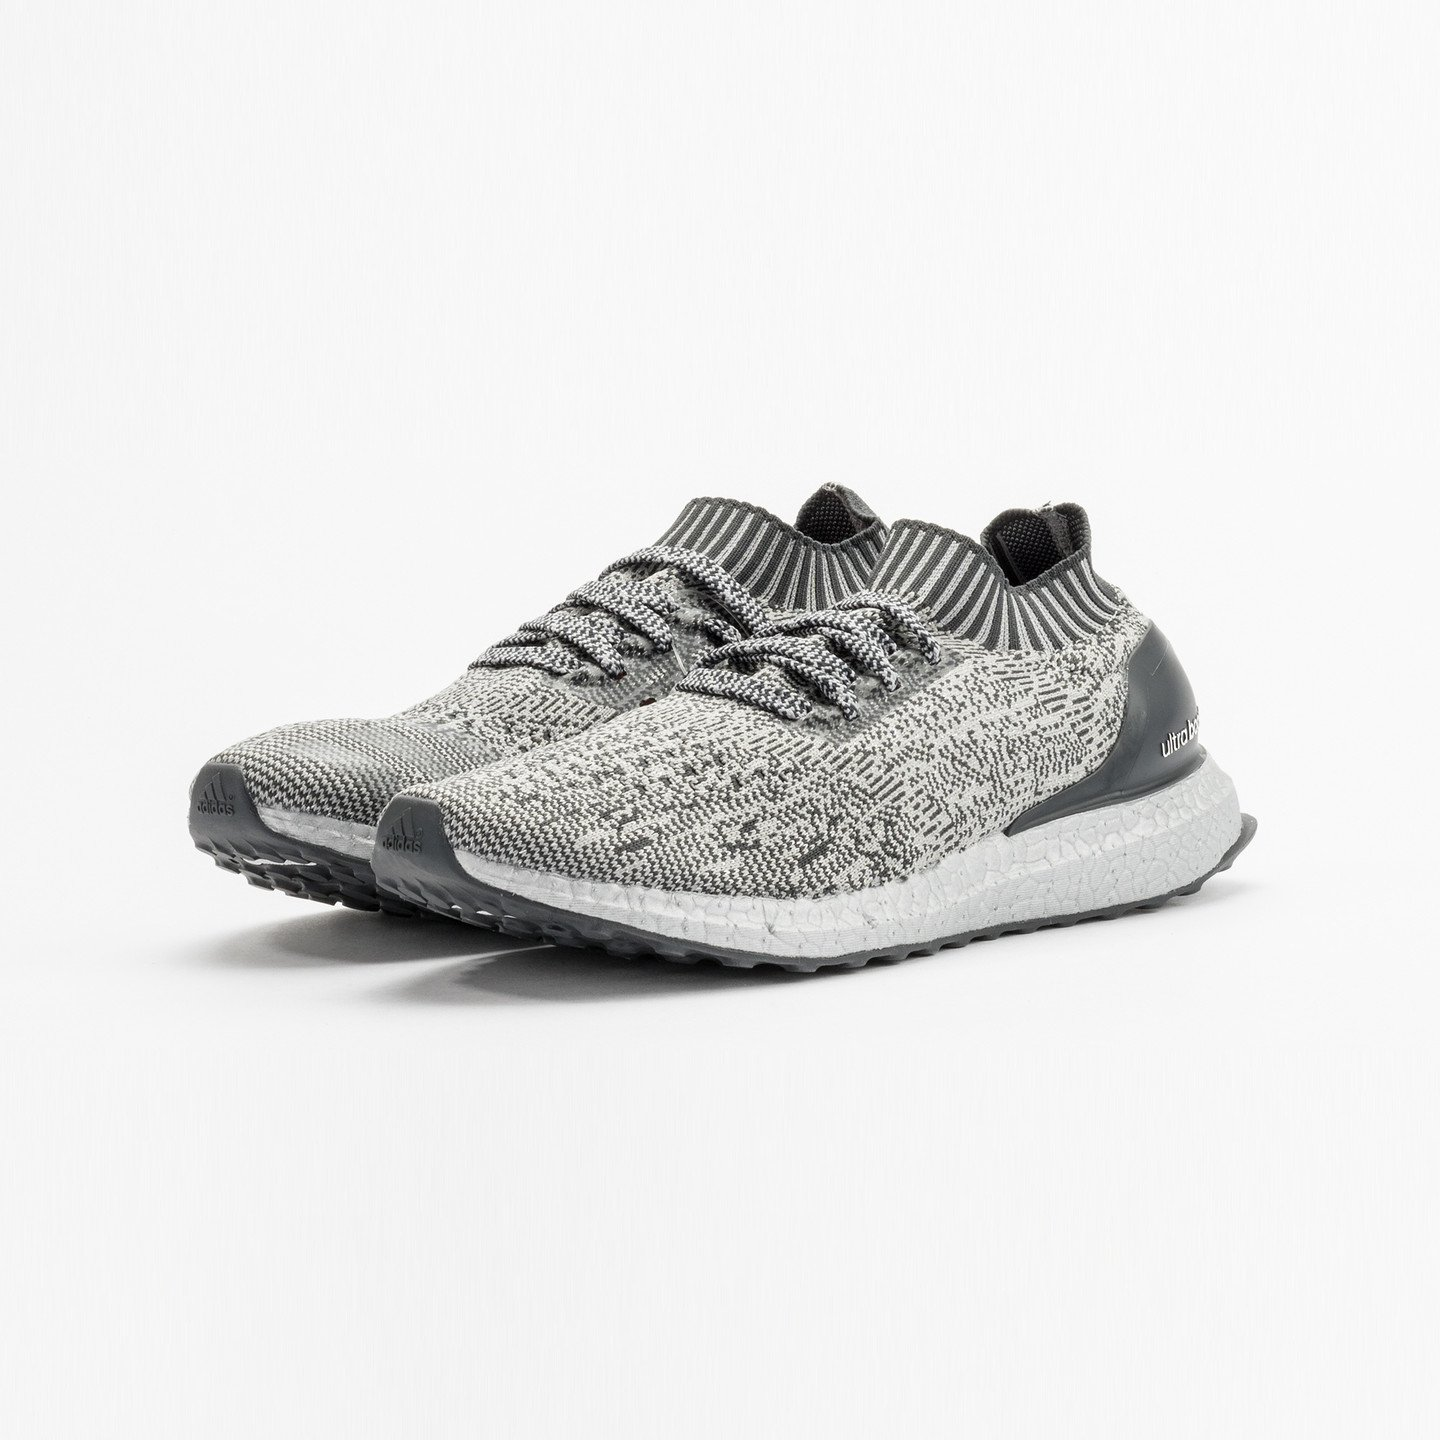 Adidas Ultra Boost Uncaged 'Super Bowl' Silver Grey BA7997